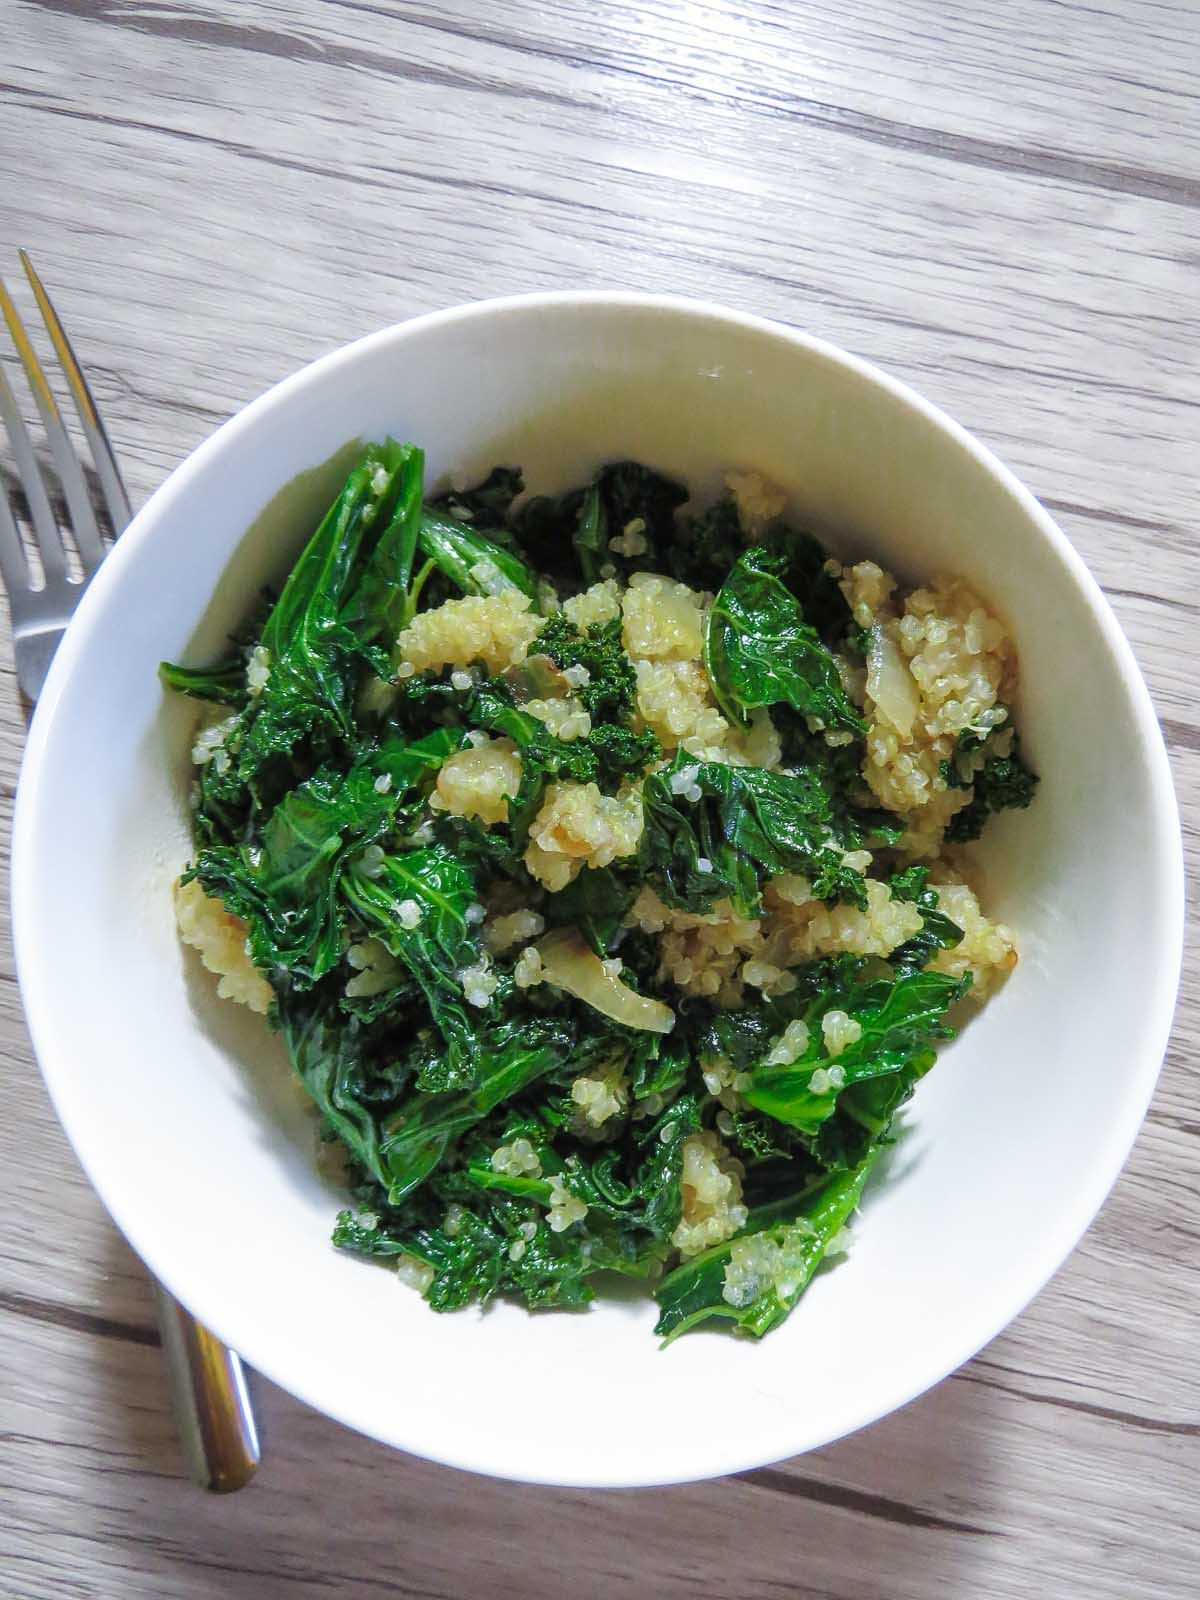 Warm Garlicky Kale & Quinoa Salad - Sautéed in garlic and onions, this kale and quinoa salad is perfect of a light lunch or as a side dish!